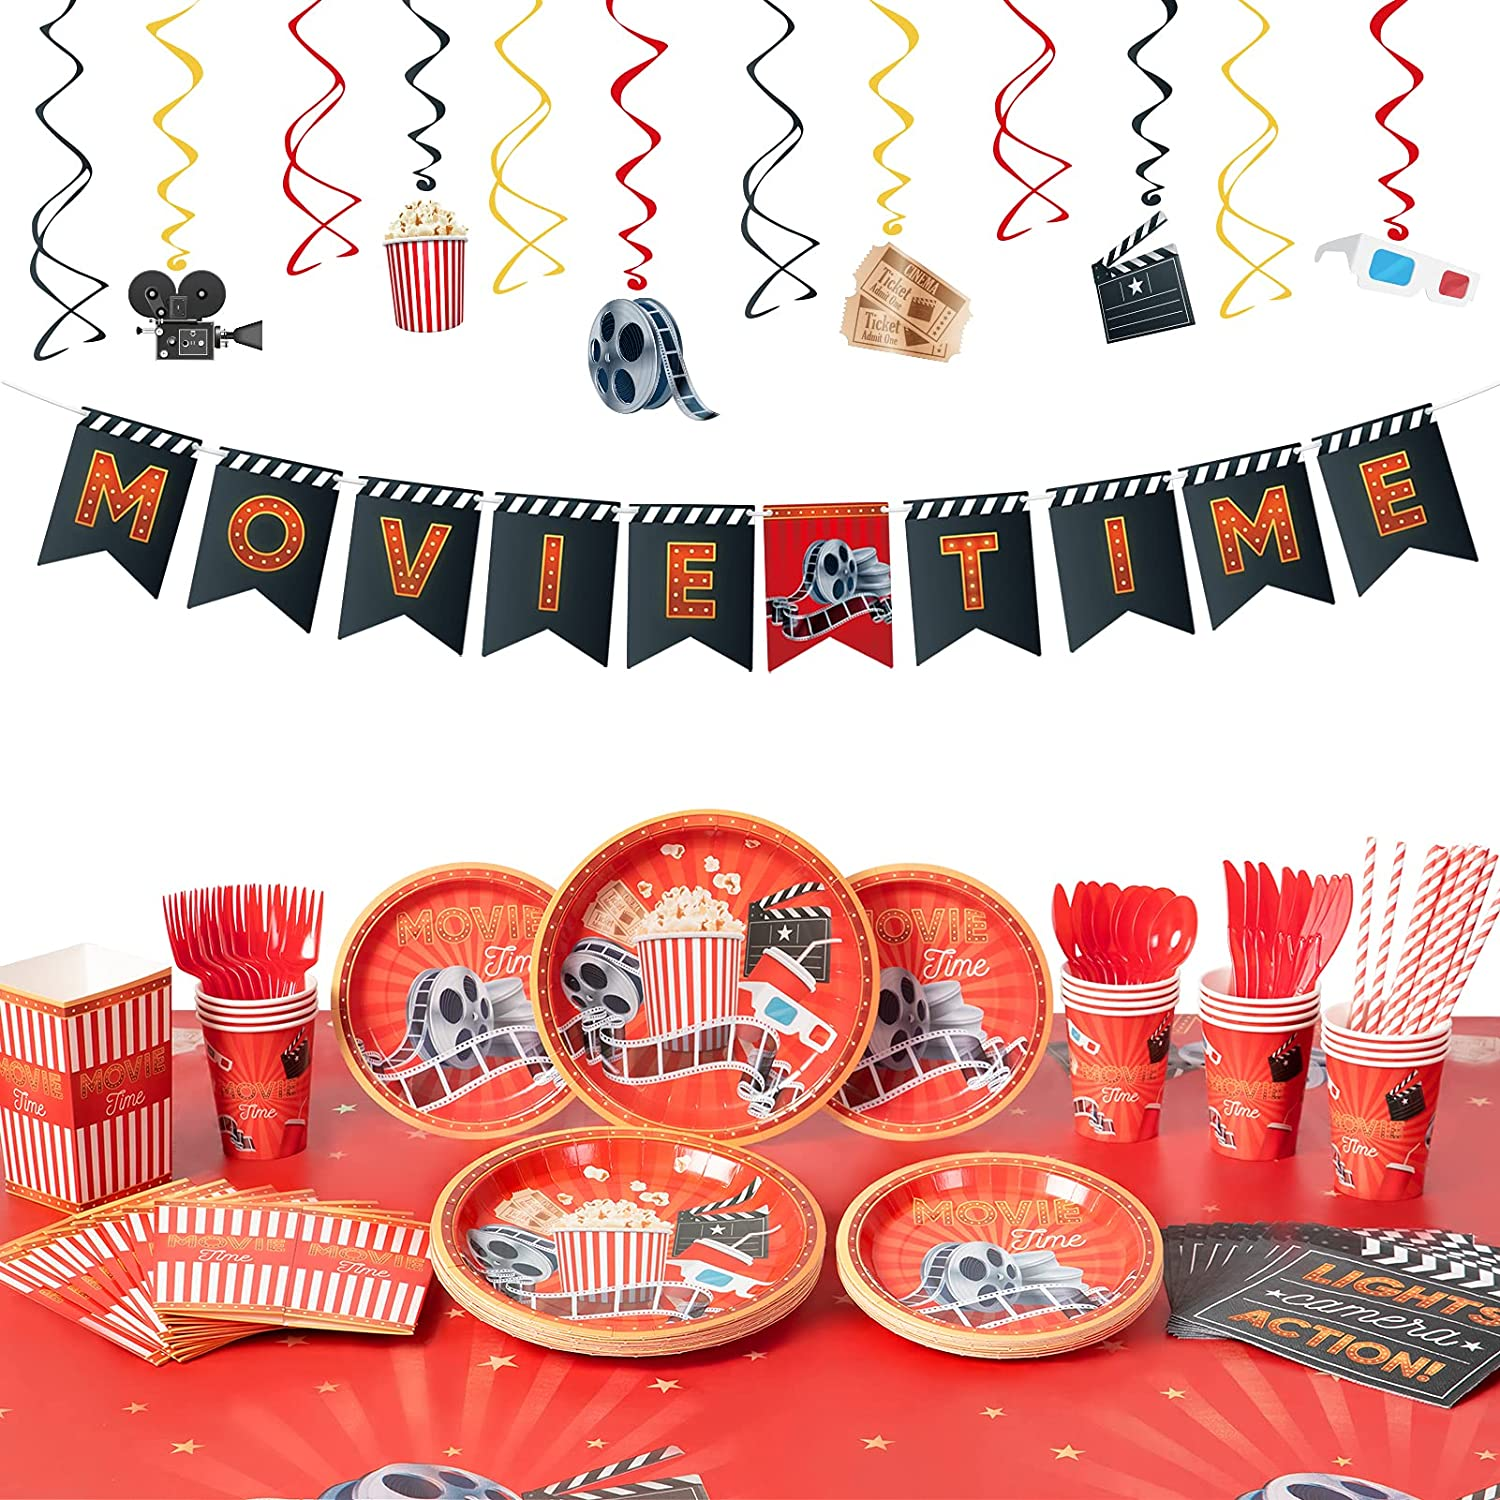 Decorlife Movie Theme Party Supplies Serves 16, Movie Night Party Decorations, Cute Complete Pack Includes Popcorn Boxes, Heavy Duty Utensils, Tablecloth, Pre-strung Banner, Hanging Swirls, 154 PCS